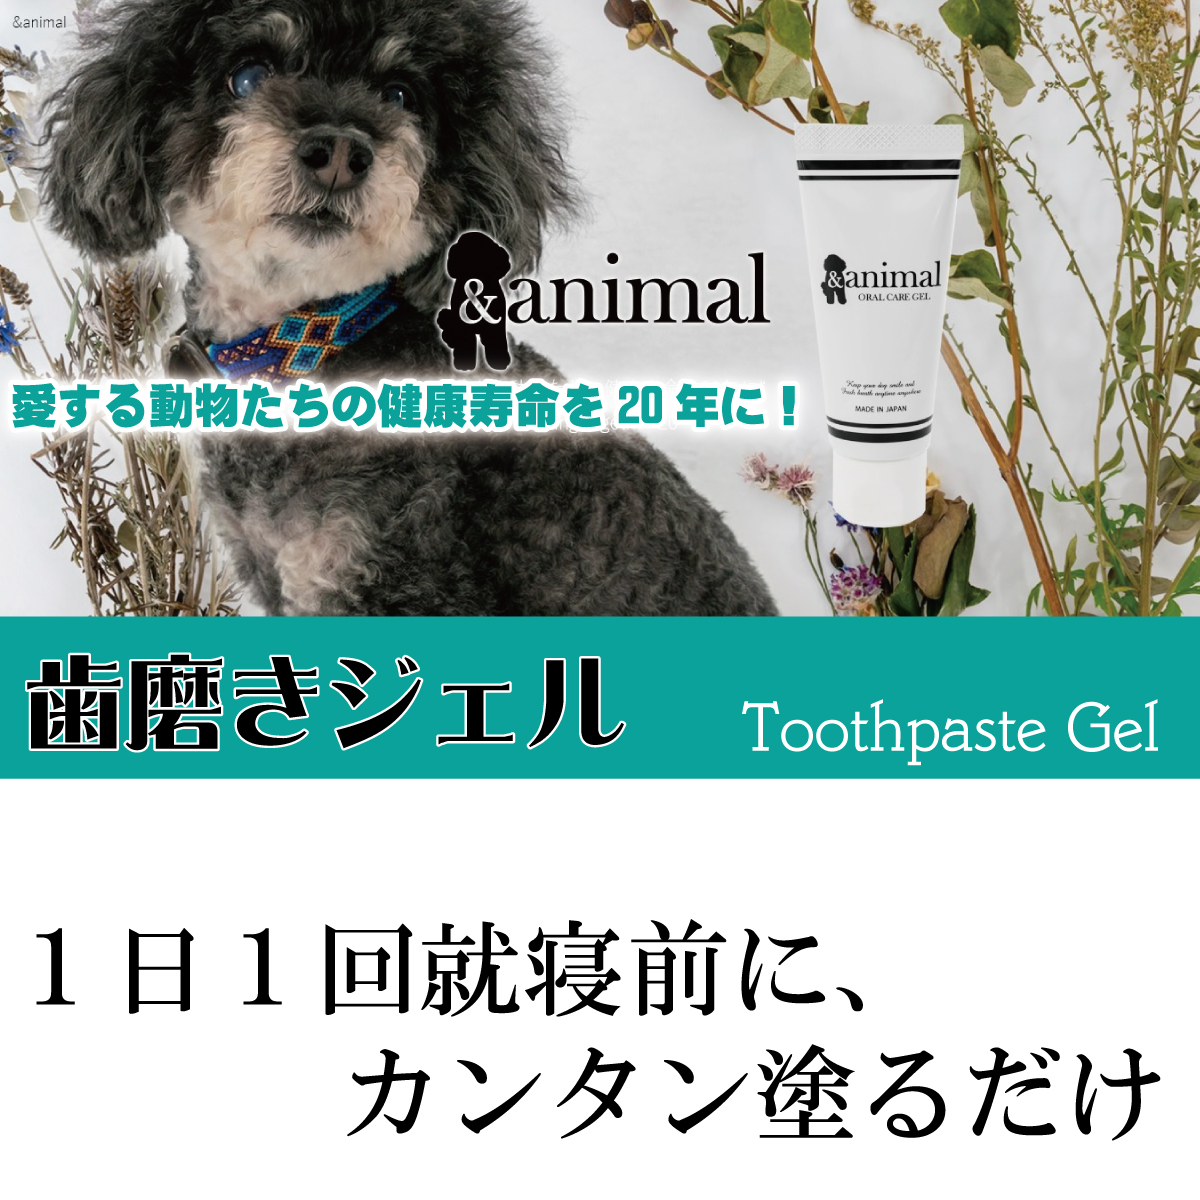 and anmal 歯磨きジェル Toothpaste Gel 愛する動物たちの健康寿命を20年に!